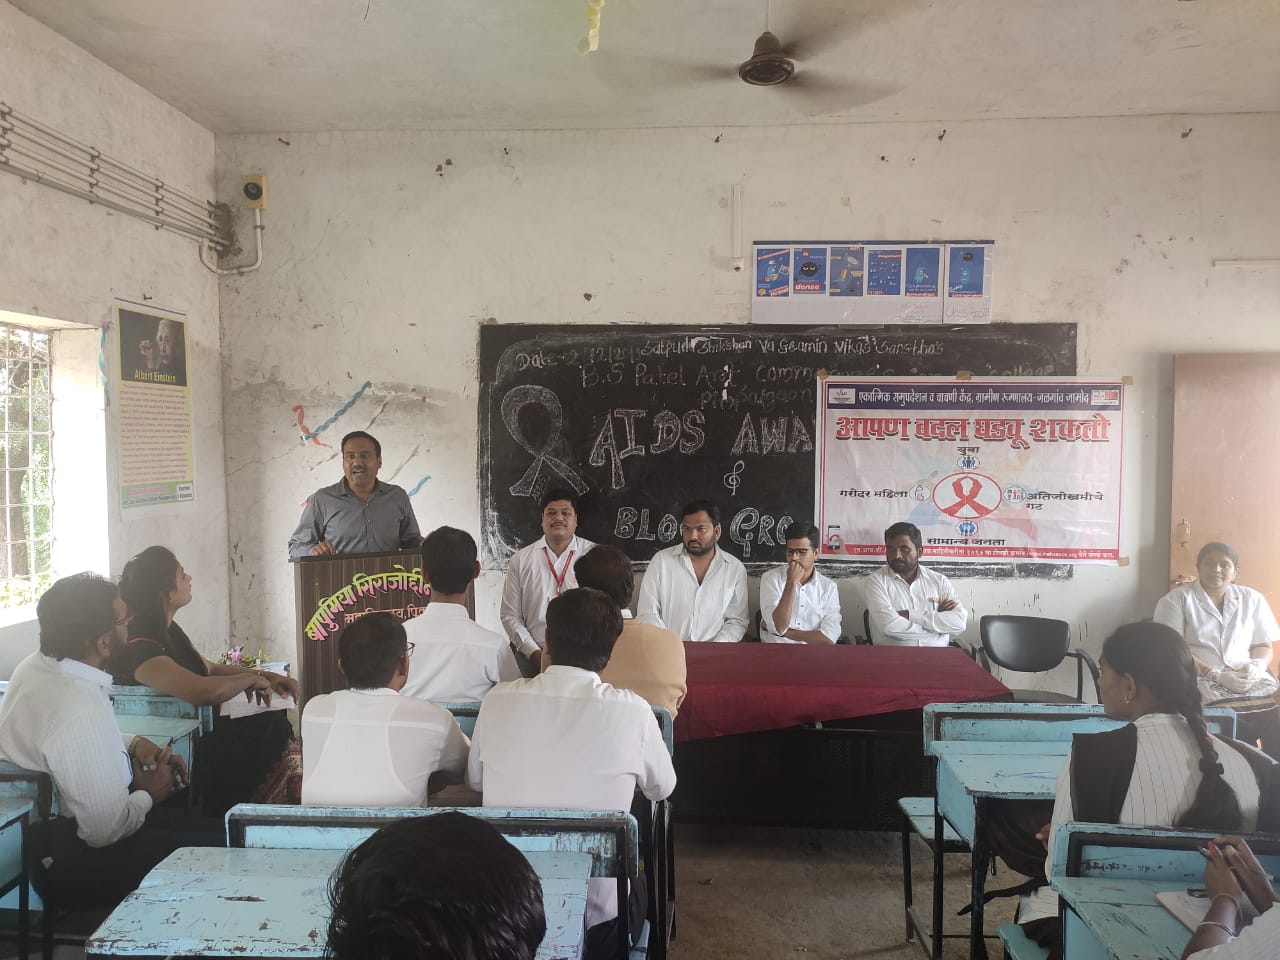 Aids awarness program oragnized by department of microbology